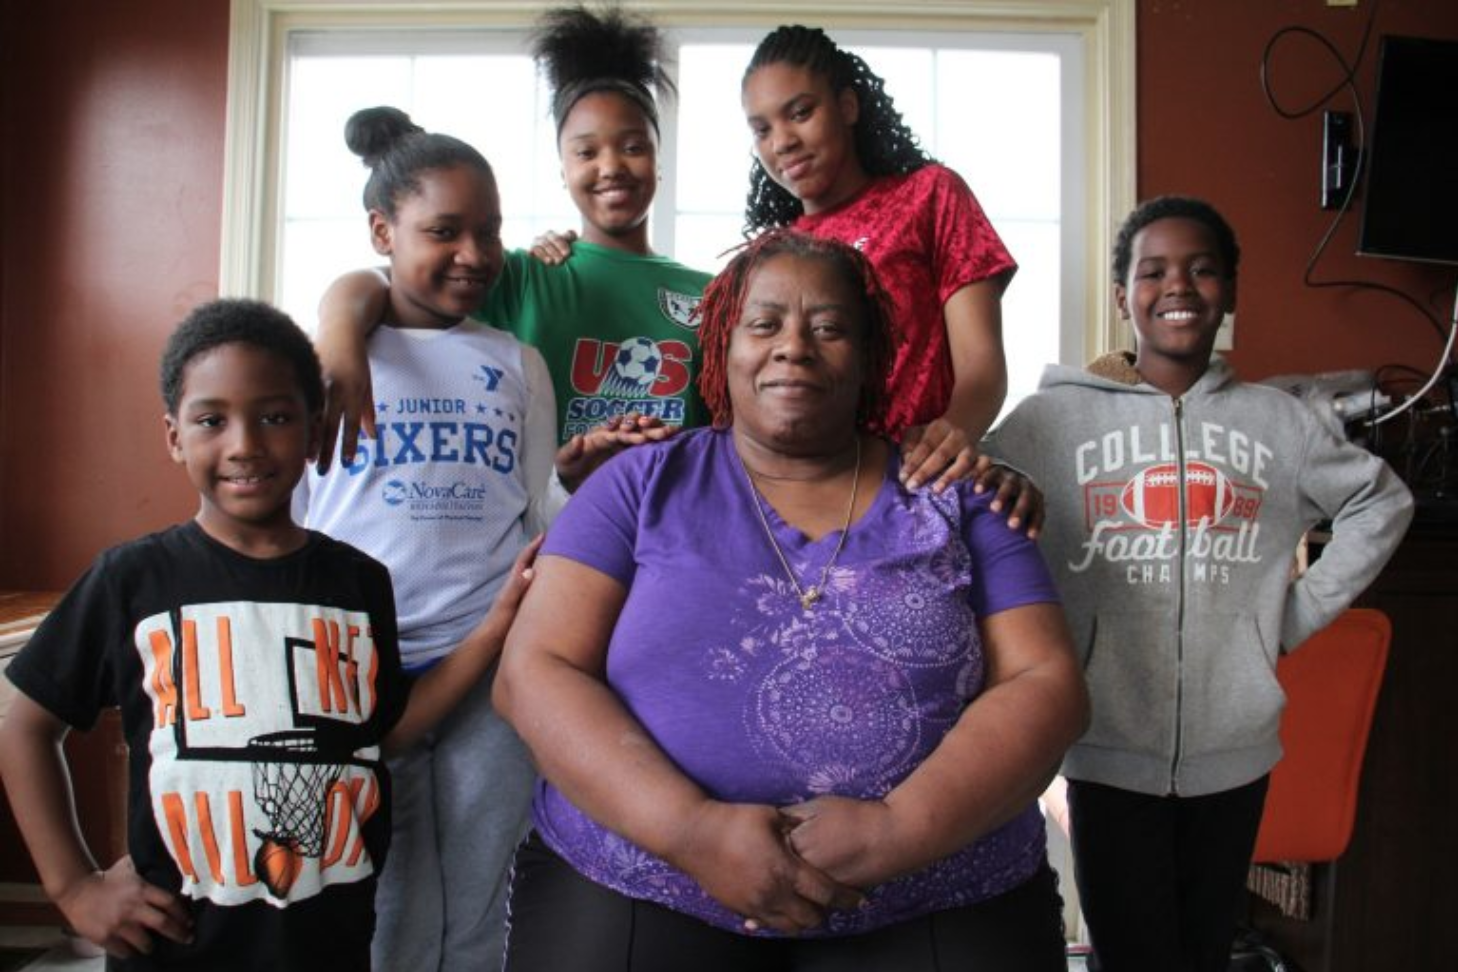 Octavia Durham is surrounded by five of the seven grandchildren who live with her and attend Pottsgrove Public Schools., (from left) Mason Dargan, 5, Tarienah Chandler Smith, 9, Miyana Francis, 14, K'Lliyah Smith, 15, and Mikhi Dargan, 9. (Emma Lee/WHYY)